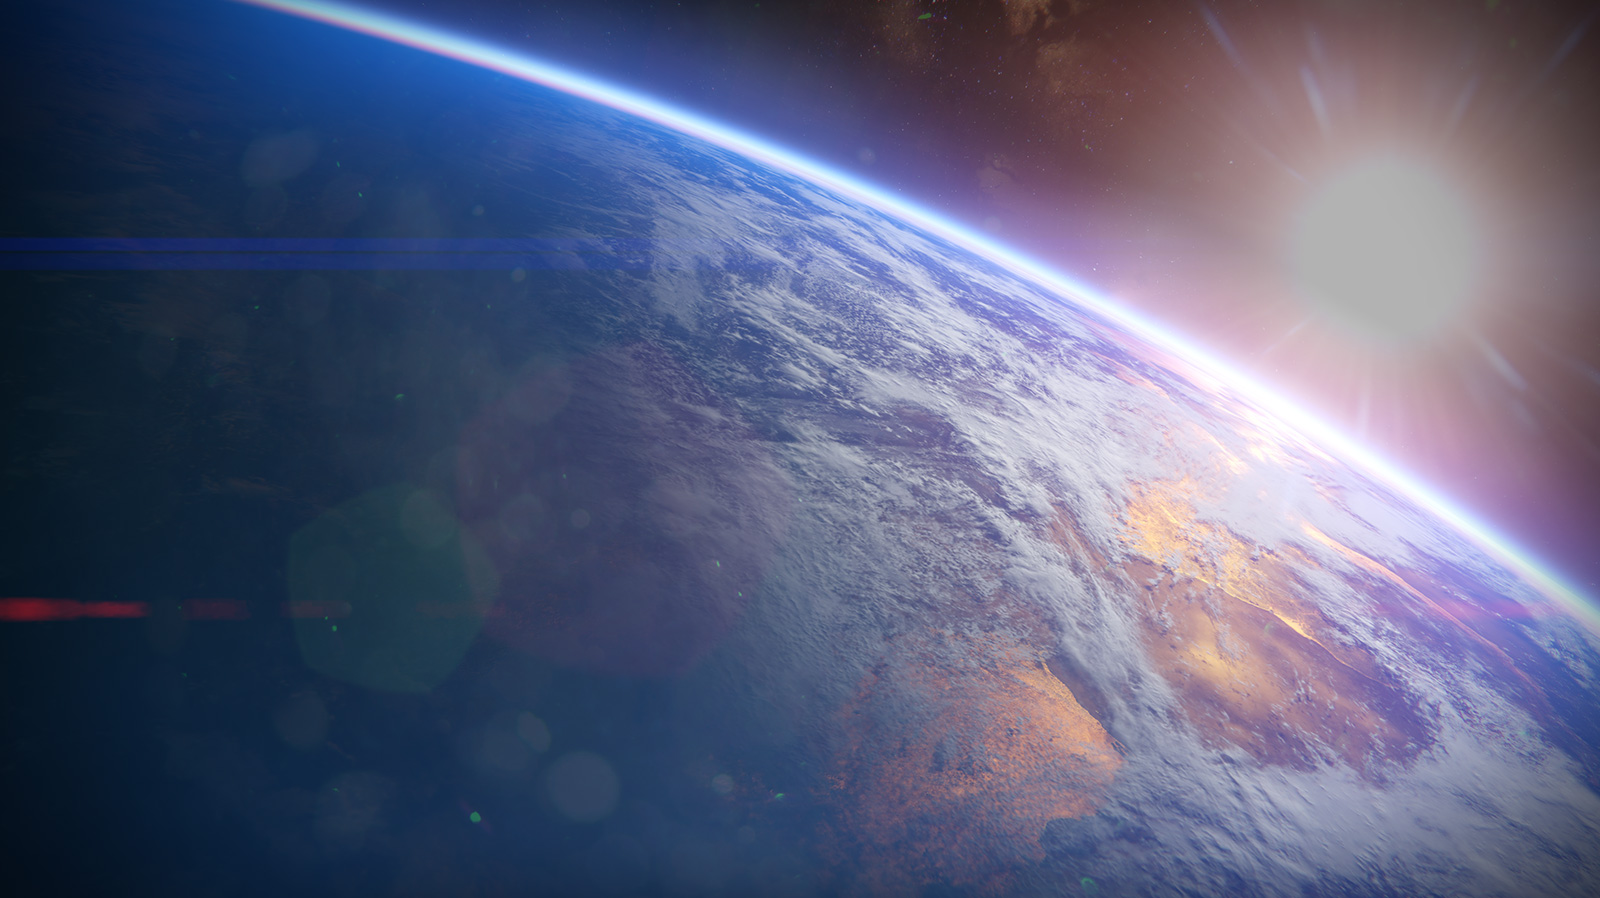 Best Destiny Picture Download picture of a high resolution hd 1600x898